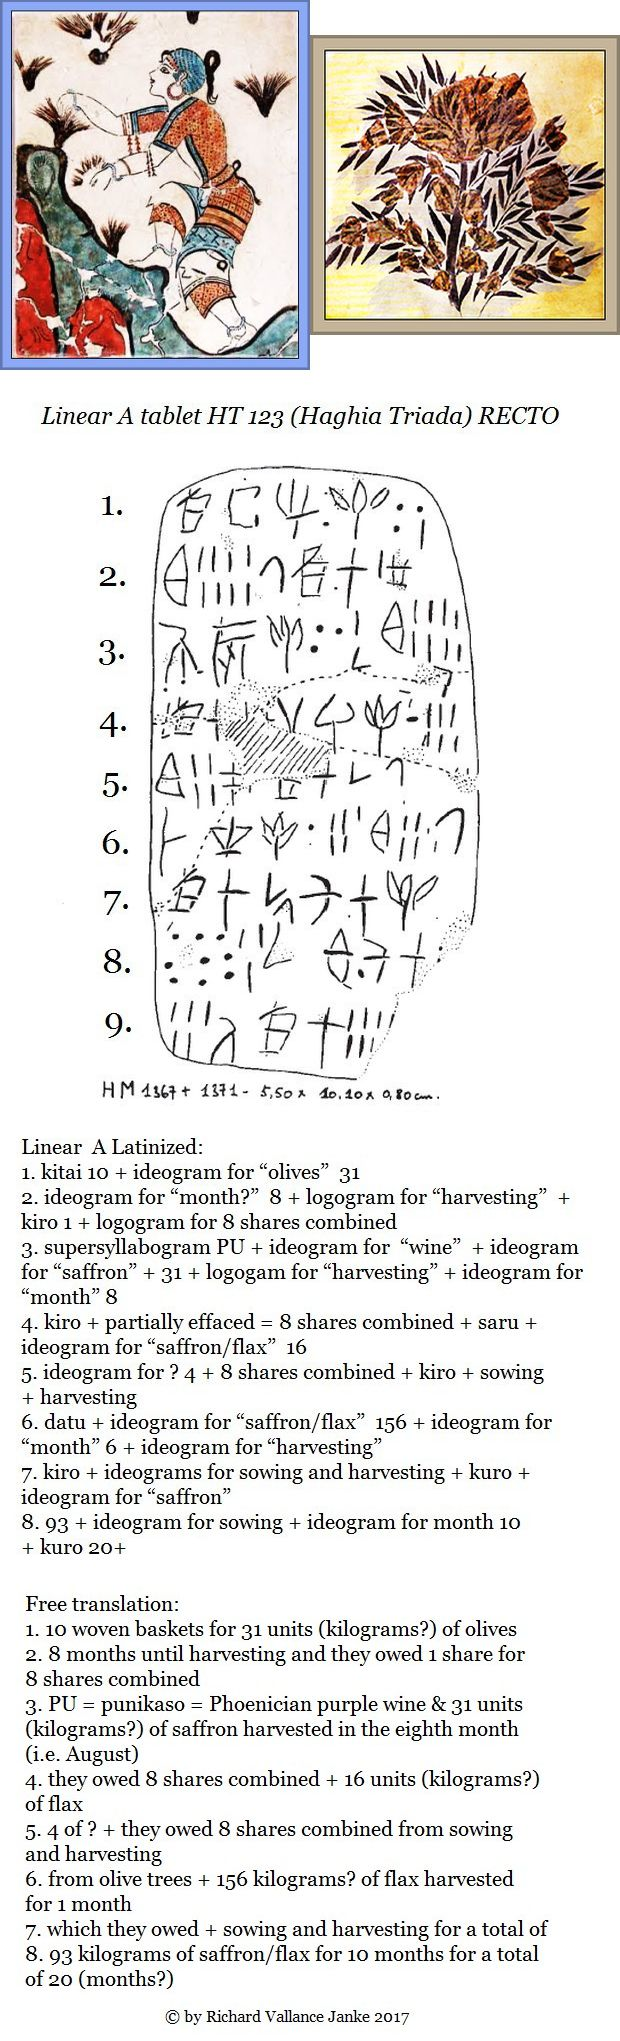 Linear A tablet HT 123 Haghia Triada RECTO olives saffron flax wine